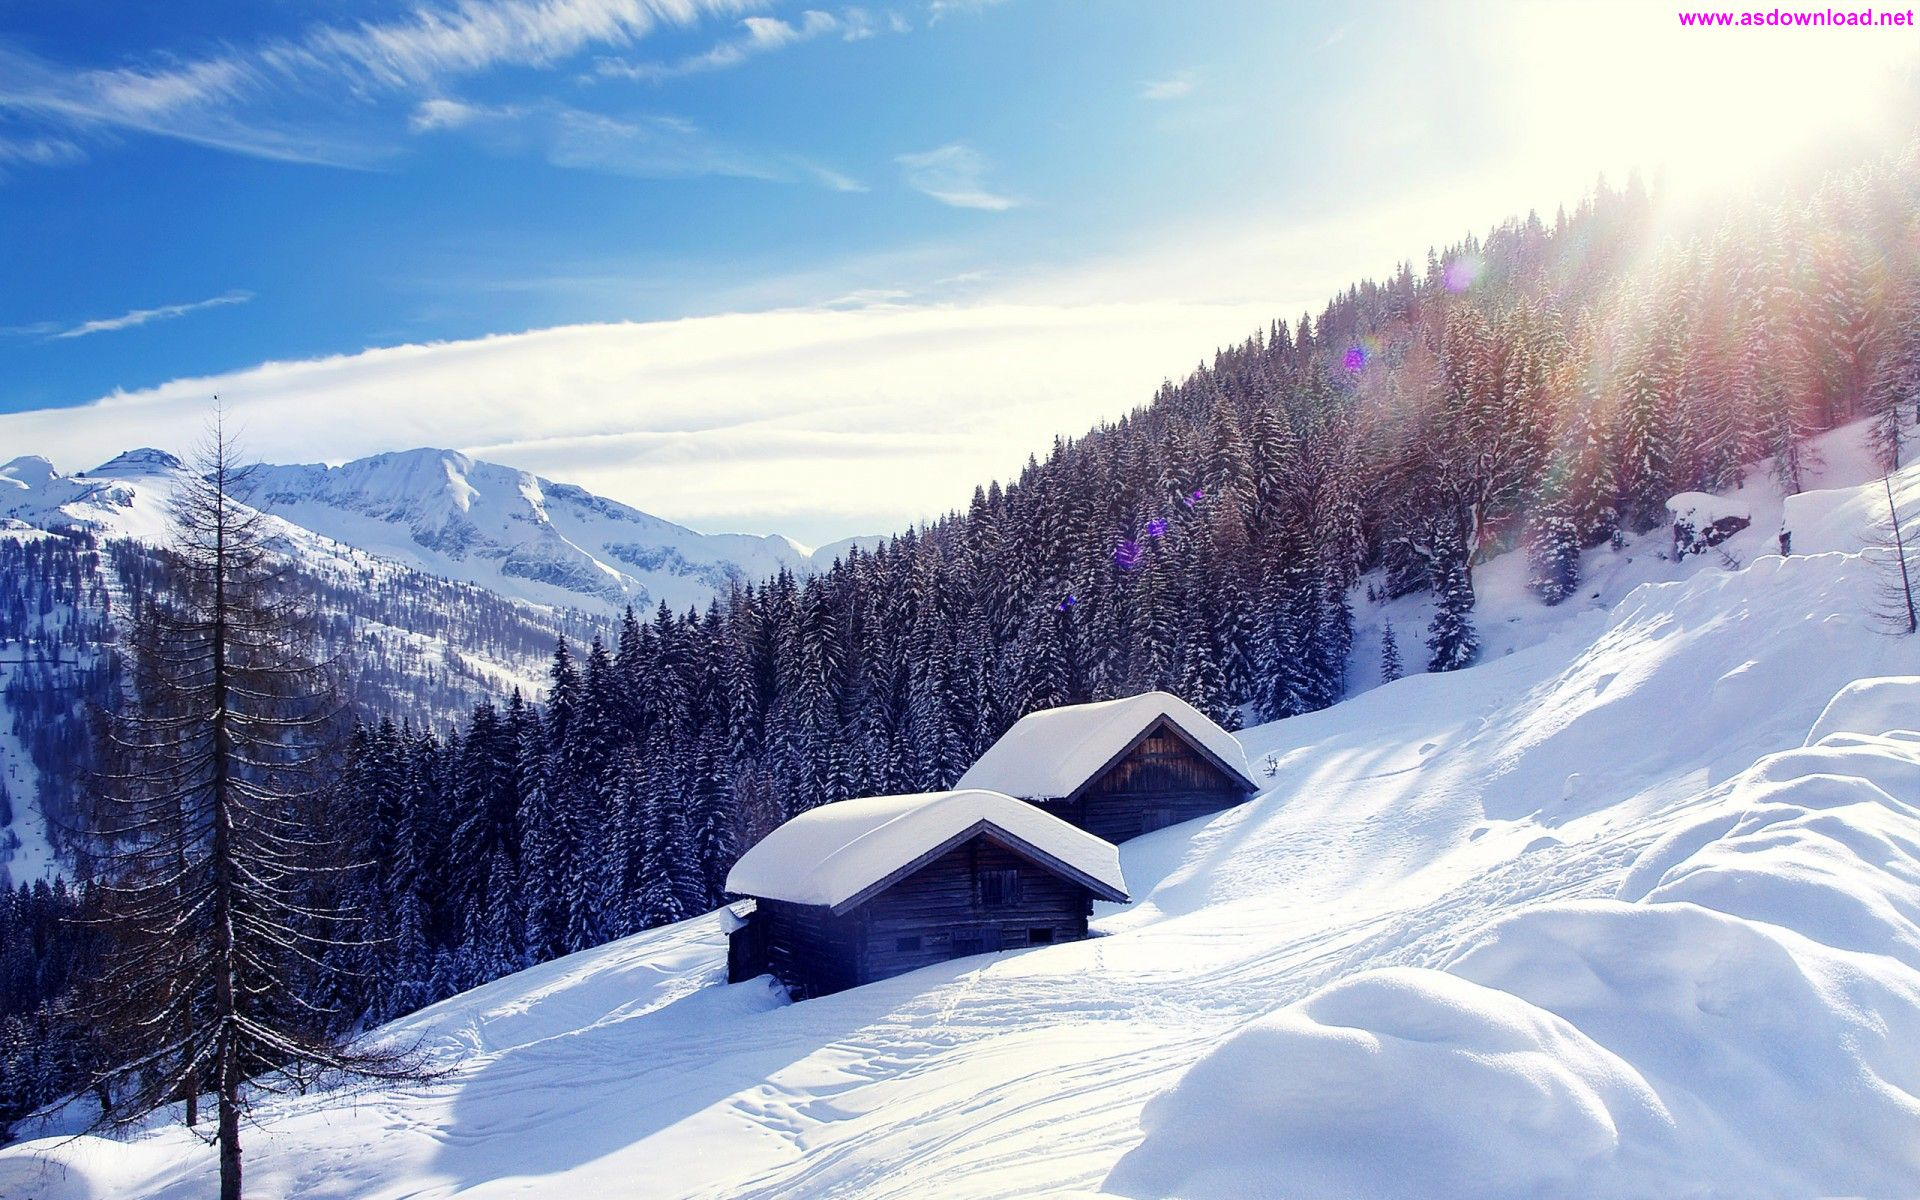 Snowy Mountain Cottage Wide Wallpaper دانلود والپیپر جدید 2015